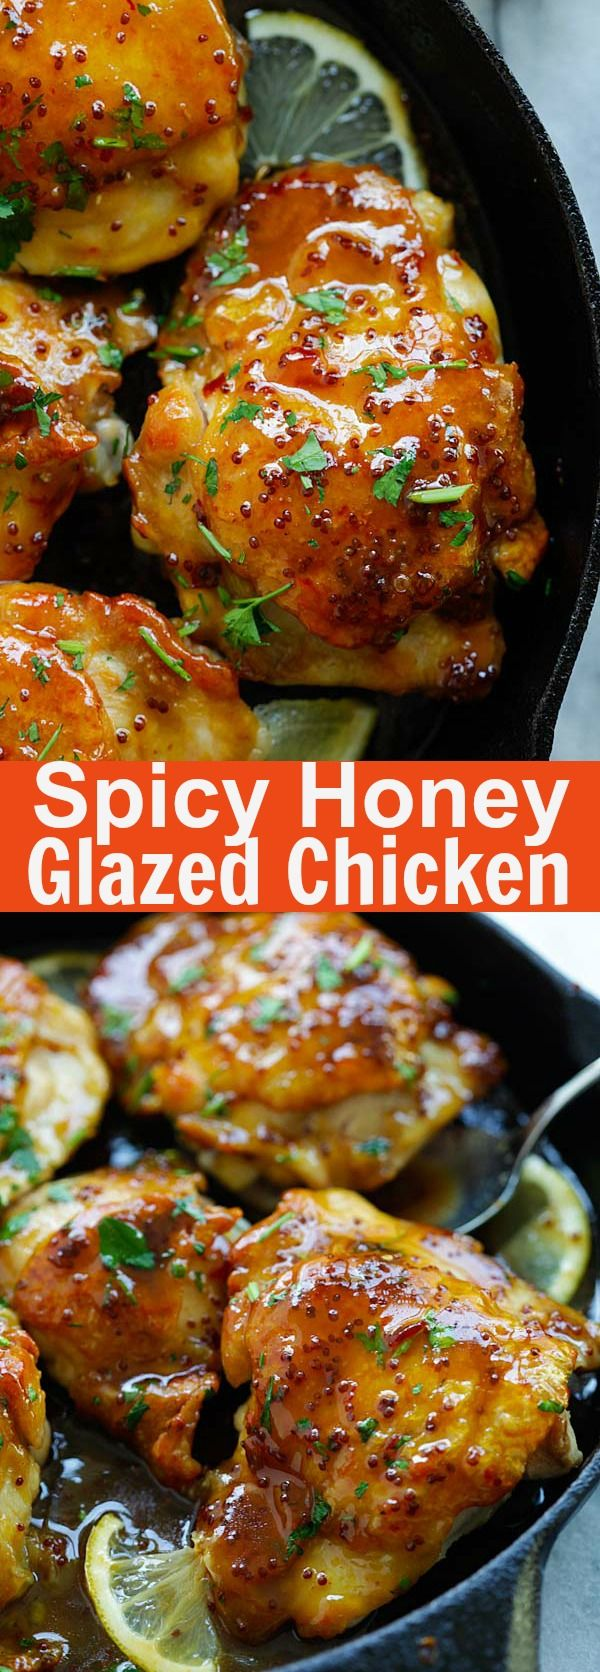 Spicy Honey-Glazed Chicken – the best skillet chicken dinner ever, in a spicy and sweet honey glaze. Takes 20 mins to make | rasamalaysia.com